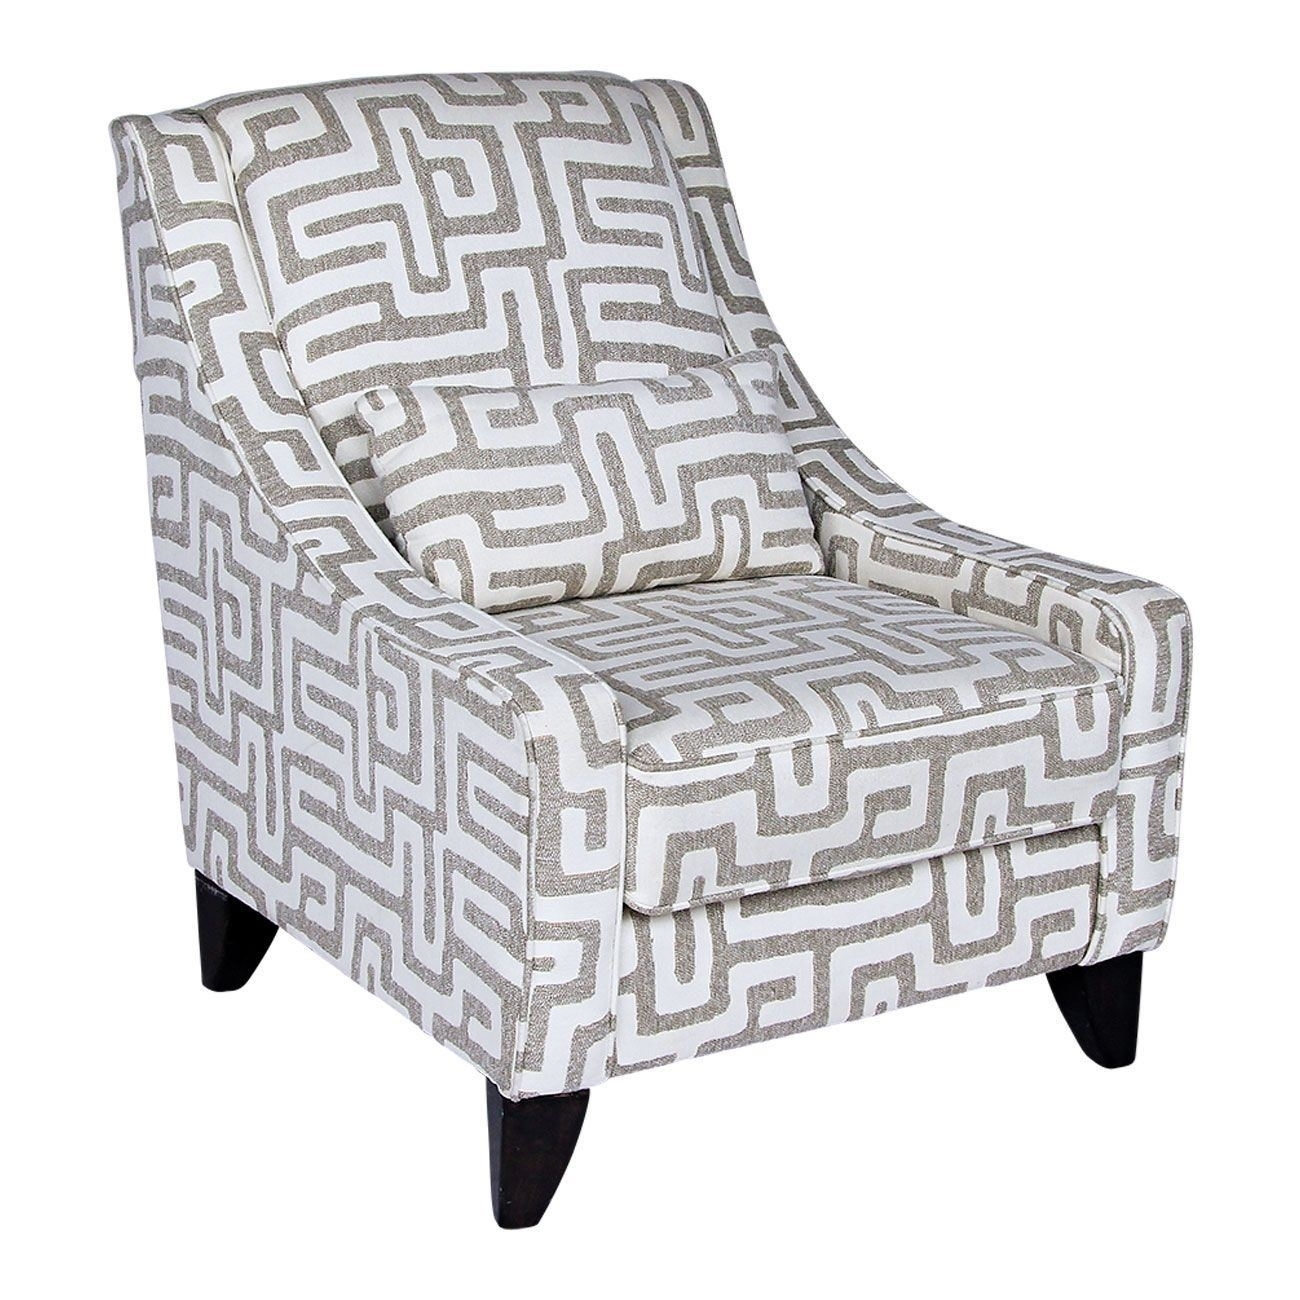 Jaxon Totem Oatmeal Chair - Woodstock Furniture & Mattress within Jaxon Sideboards (Image 15 of 30)